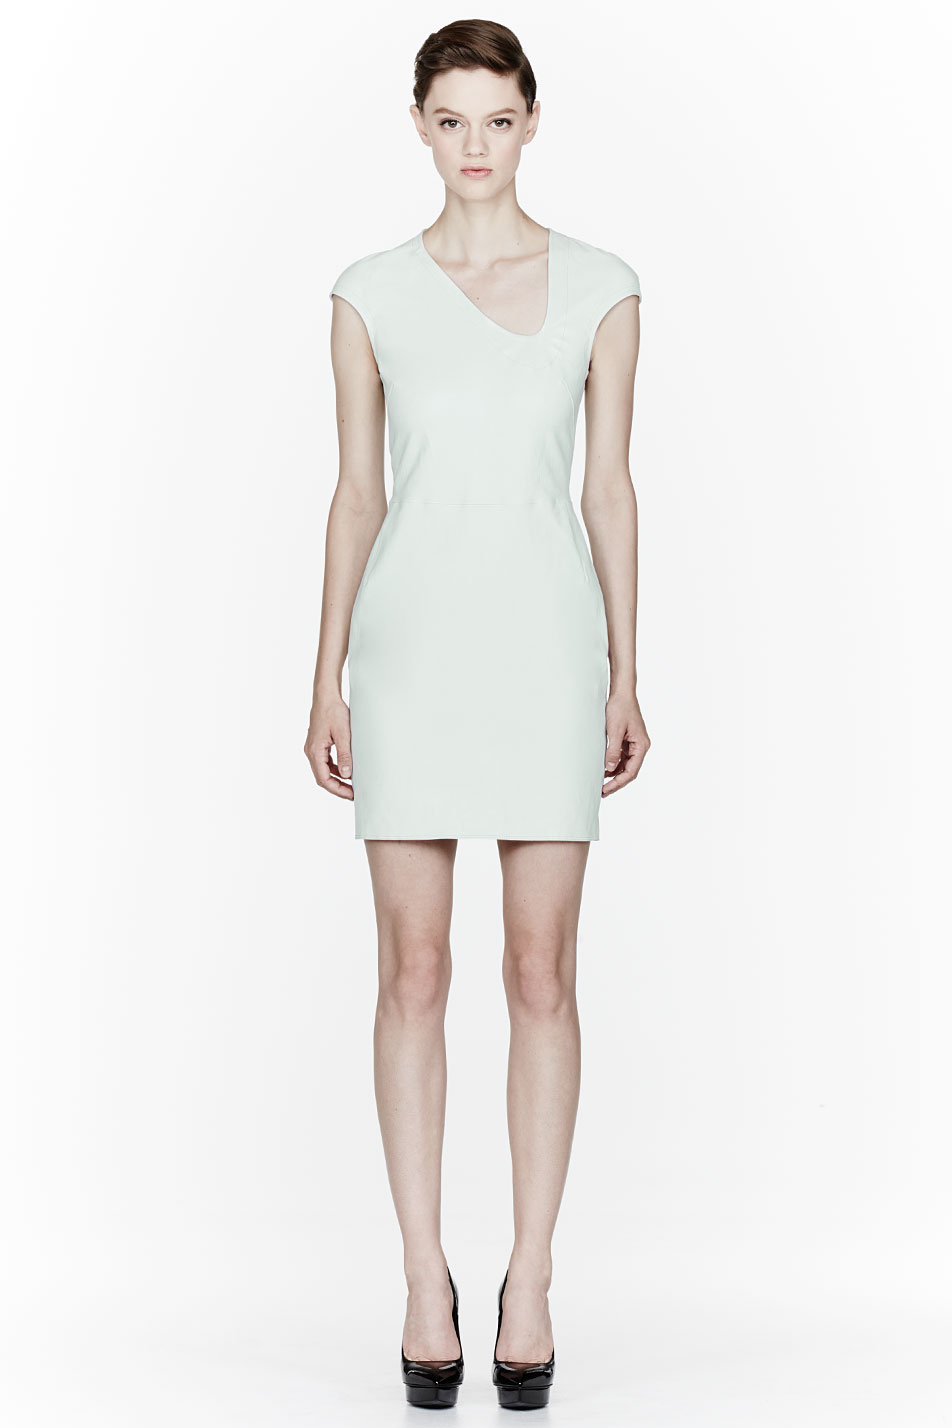 mugler seafoam green leather dress